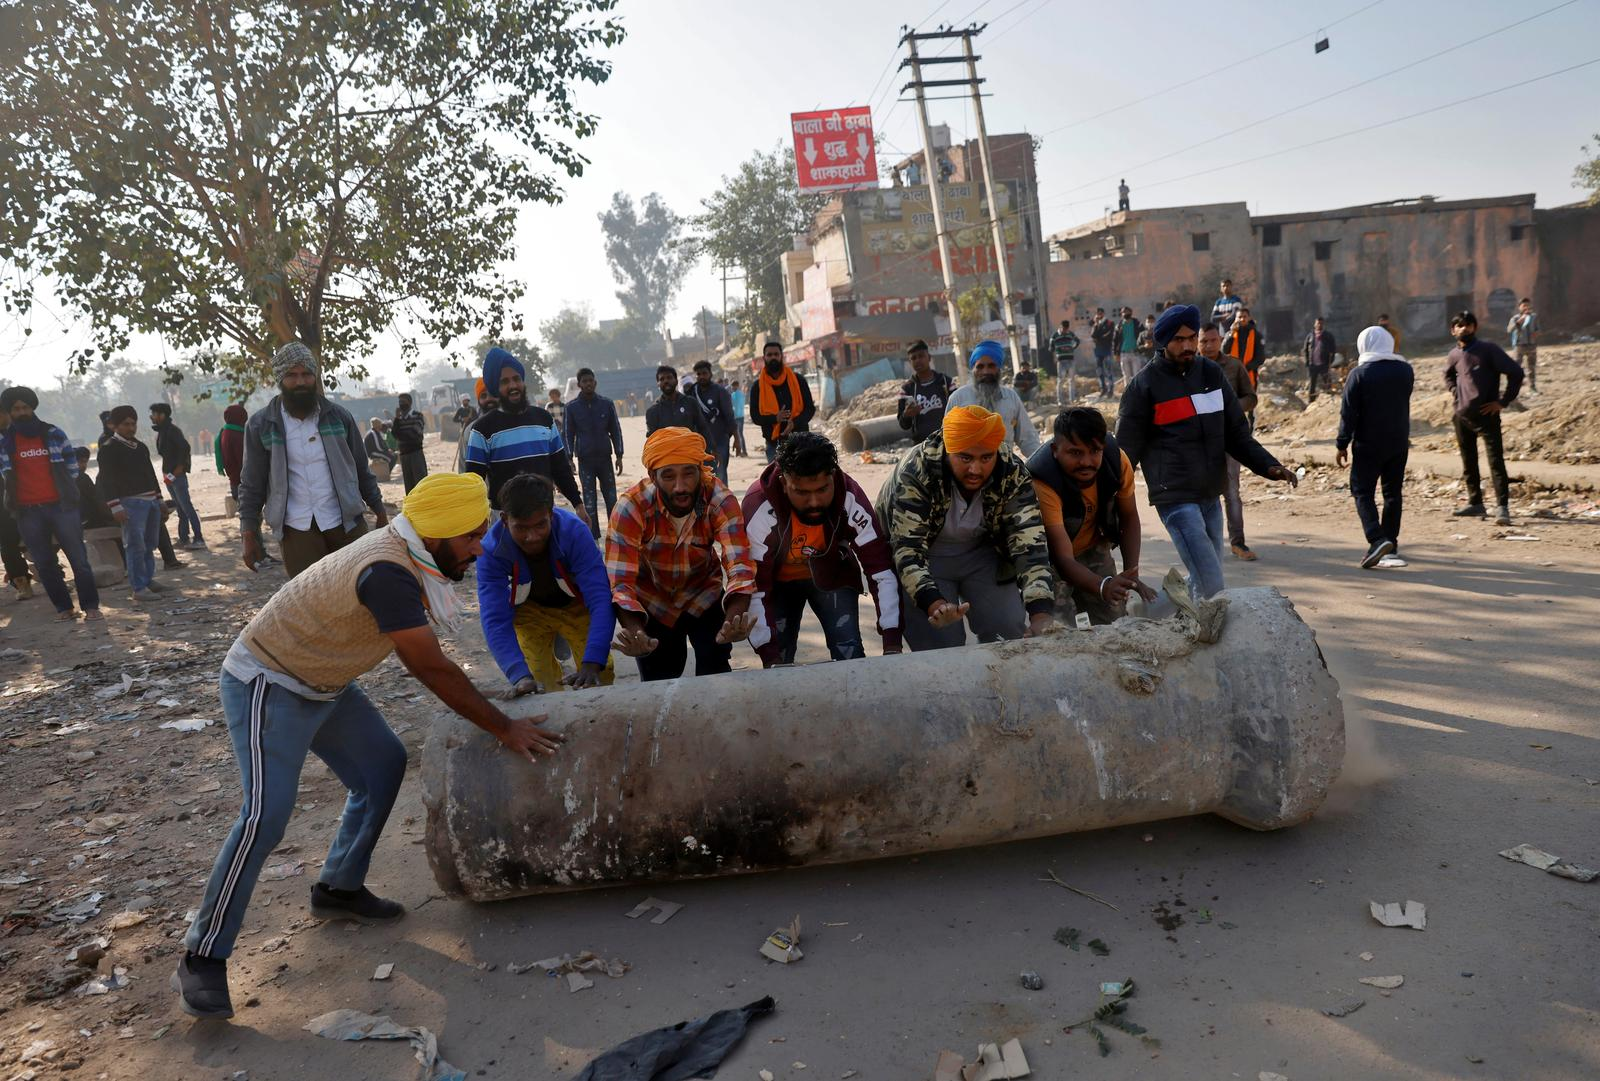 Farmers push a cement pipe to use it as a roadblock during a protest against the newly passed farm bills at Singhu border near Delhi, India, November 28, 2020. Photo: Reuters